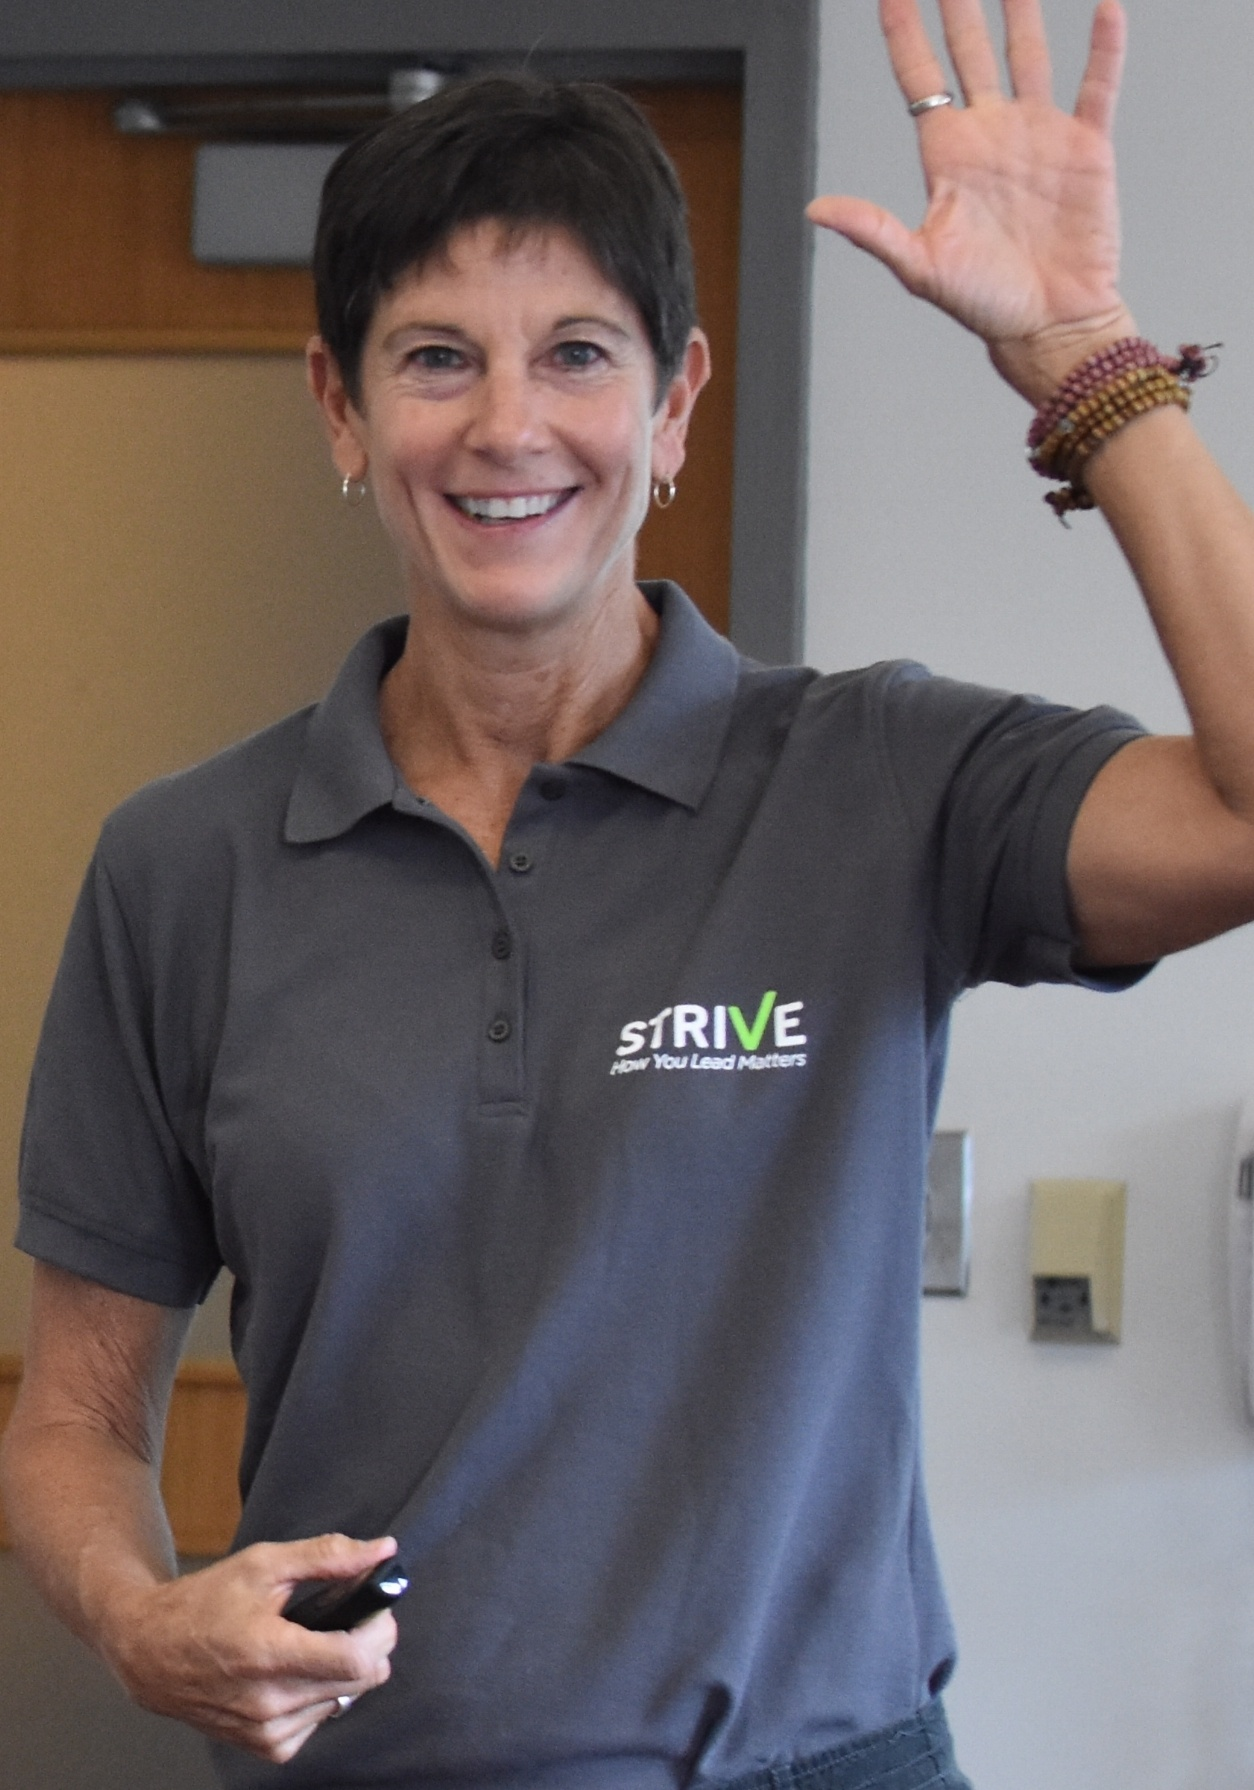 Pam Herath Strive How You Lead Matters